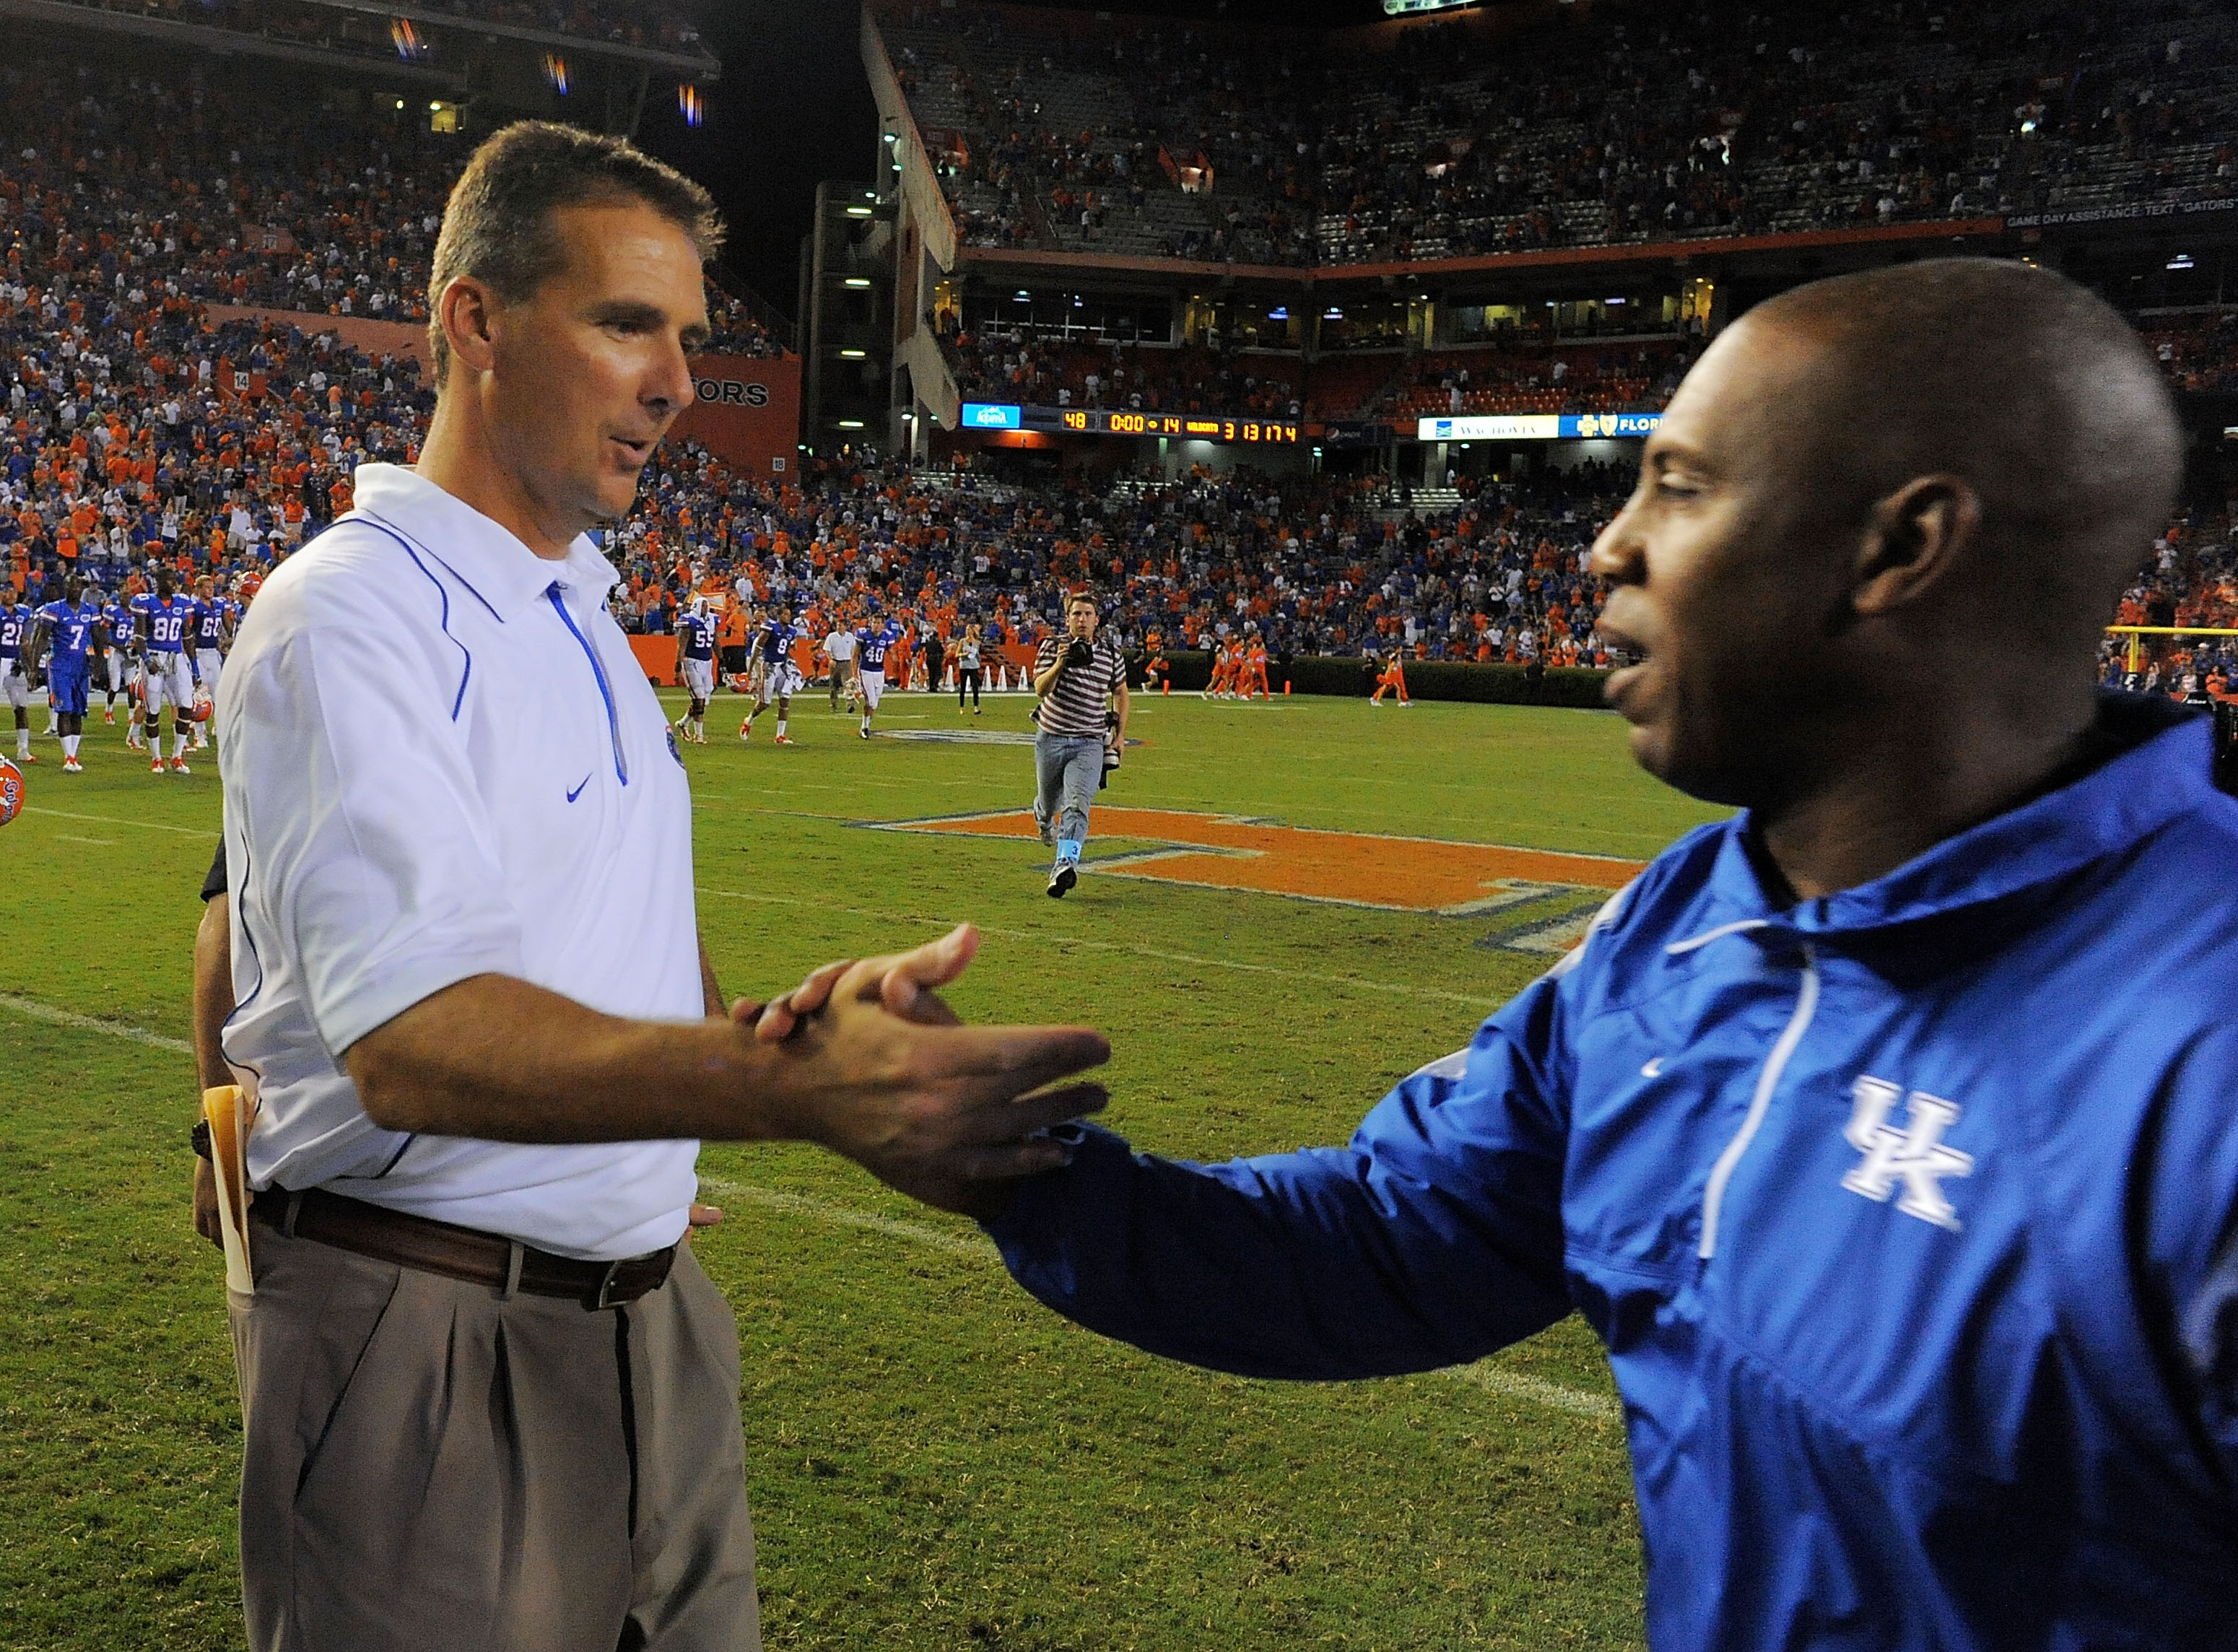 GAINESVILLE, FL - SEPTEMBER 25:  Head coach Urban Meyer of the Florida Gators is congratulated by head coach Joker Phillips of the Kentucky Wildcats at Ben Hill Griffin Stadium on September 25, 2010 in Gainesville, Florida. Florida defeated Kentucky 48-14